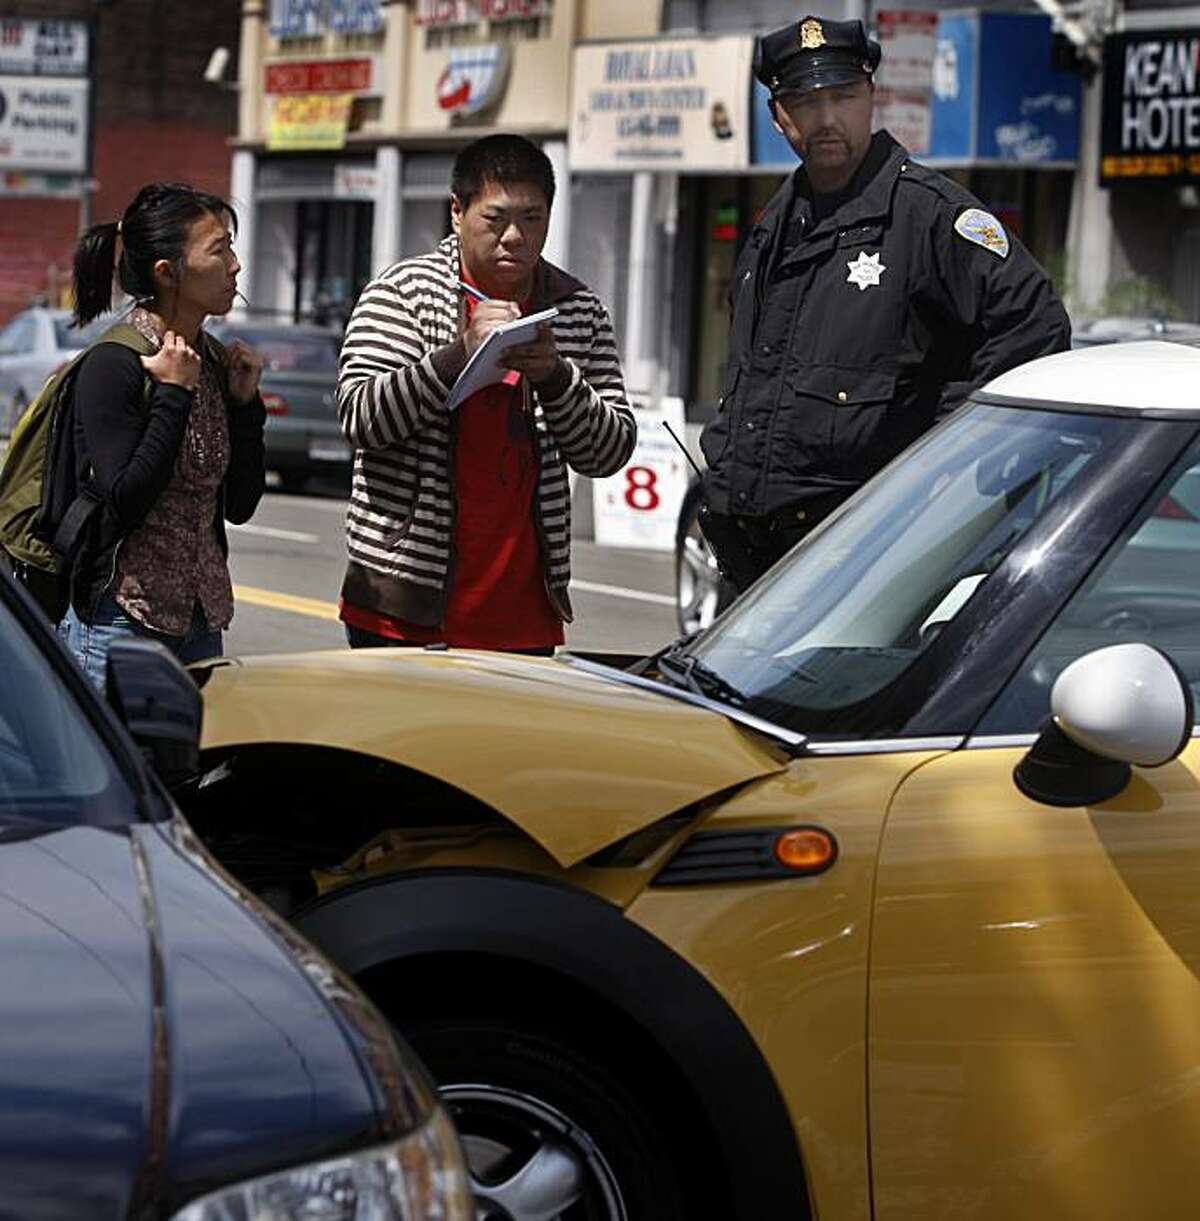 Monica Jensen and Jerold Chinn interview a police officer while covering a traffic accident for the San Francisco Public Press newspaper in San Francisco, Calif., on Friday, June 18, 2010. The small start-up news operation publishes its first print edition on Tuesday, June 22.